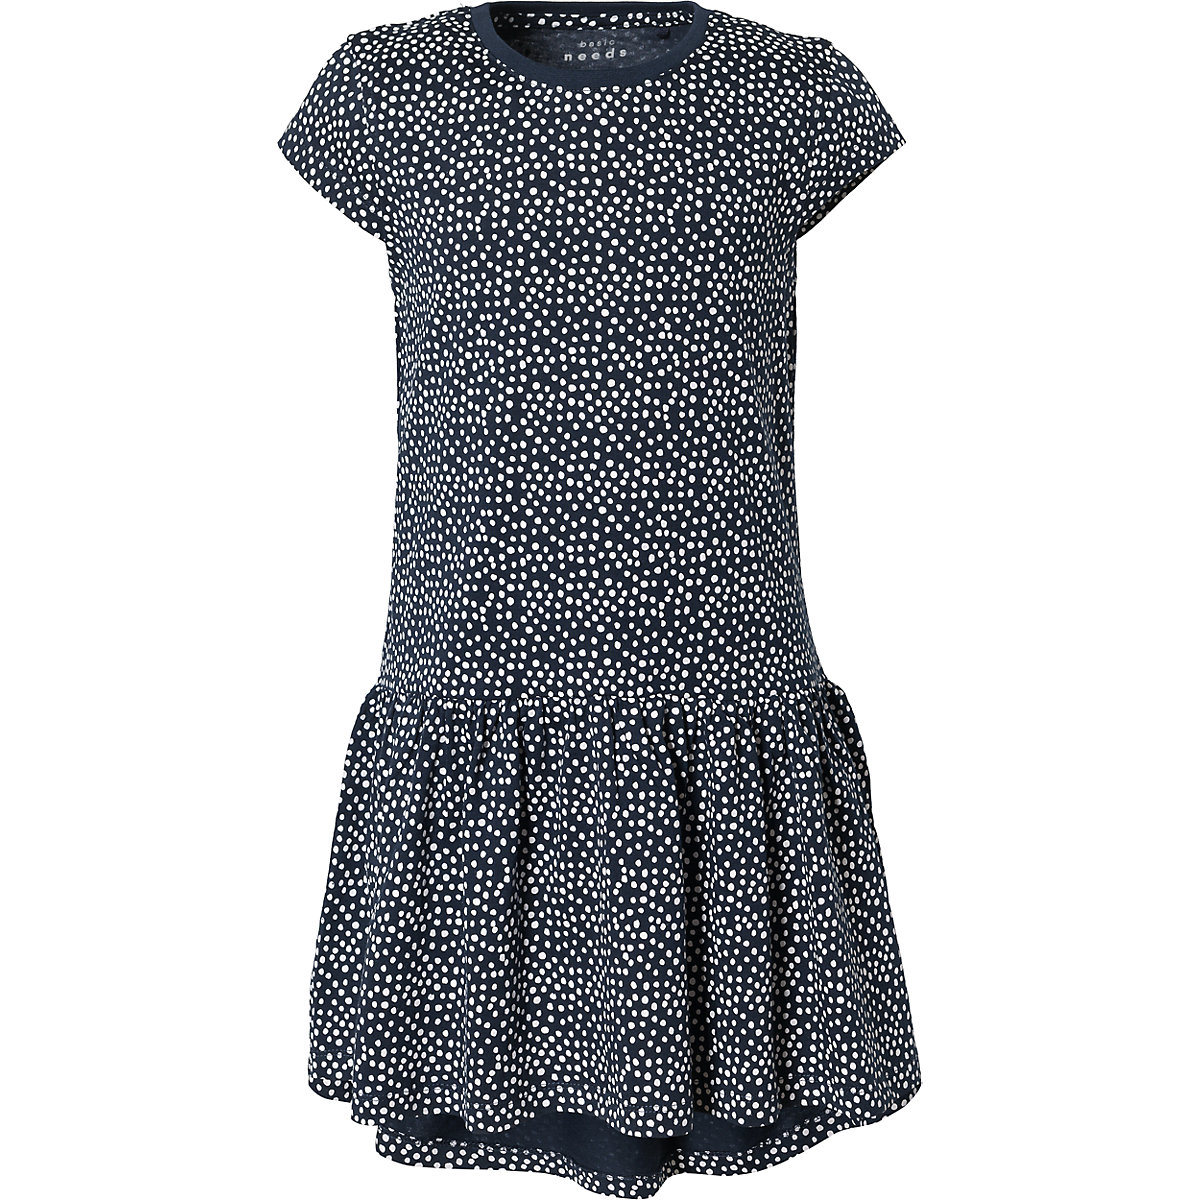 NAME IT Dresses 10626582 Dress girl children checkered pattern collar fitted silhouette sequins Cotton Casual Blue Short Sleeve